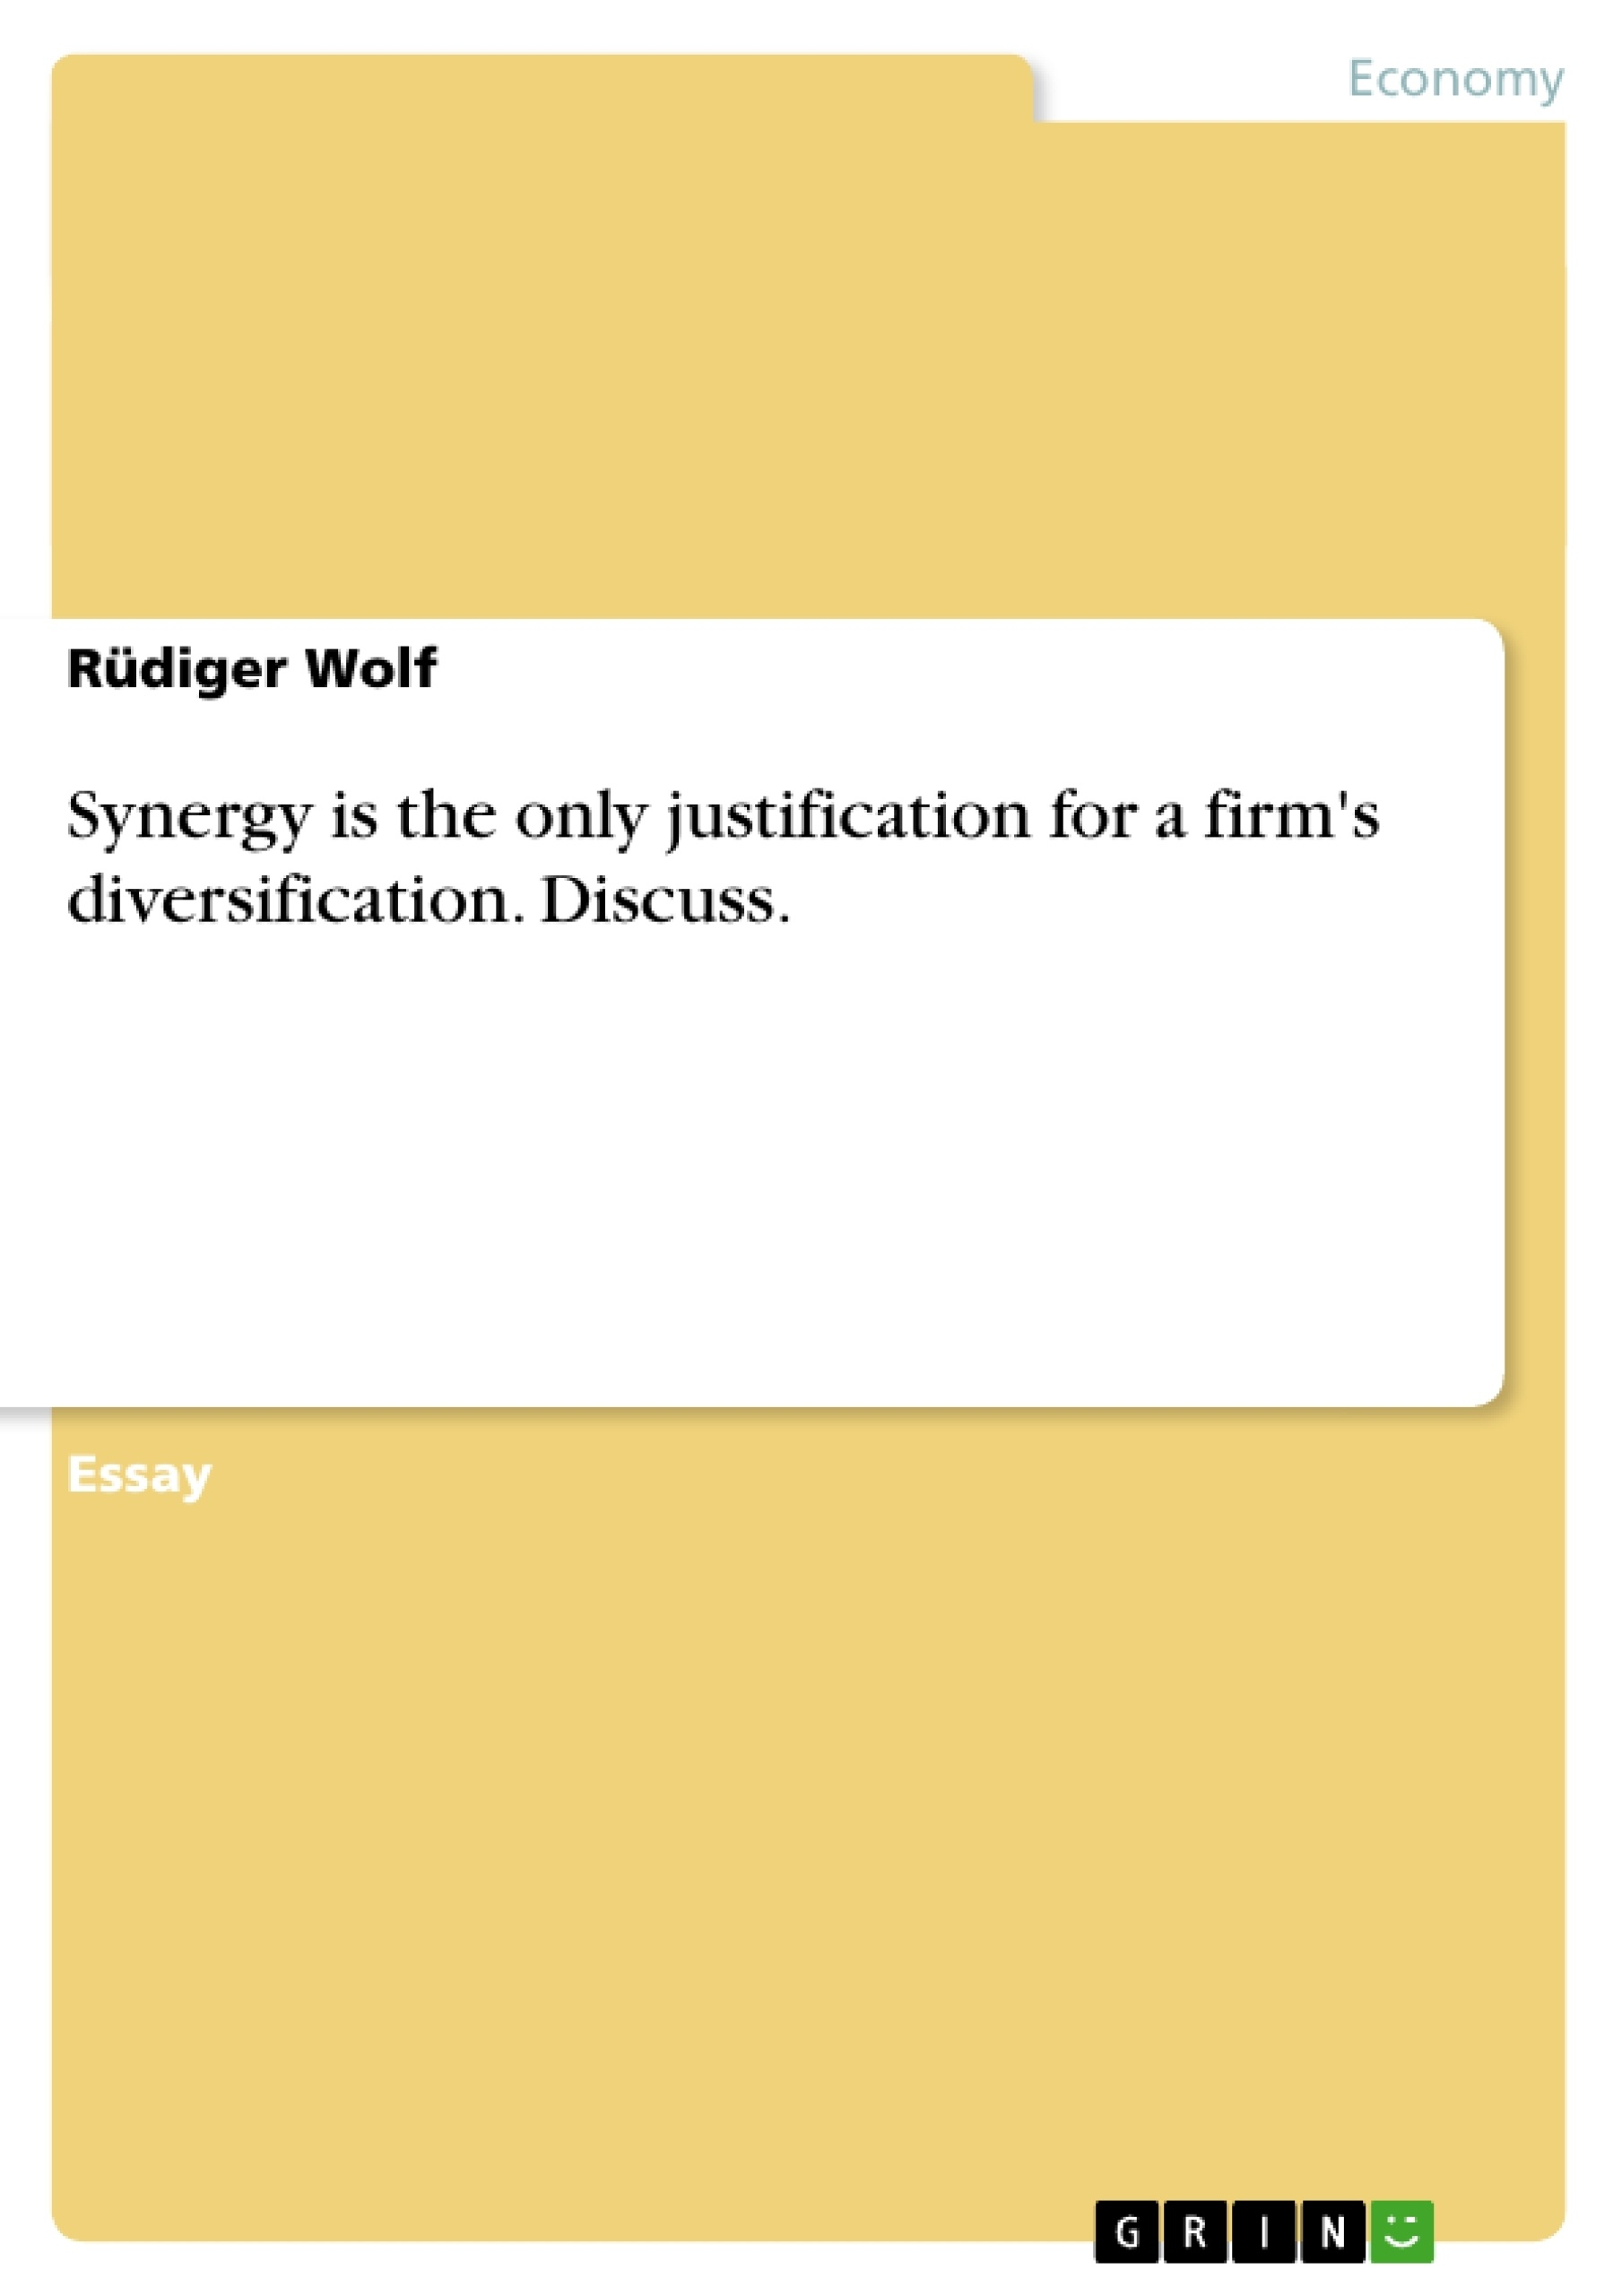 Title: Synergy is the only justification for a firm's diversification. Discuss.